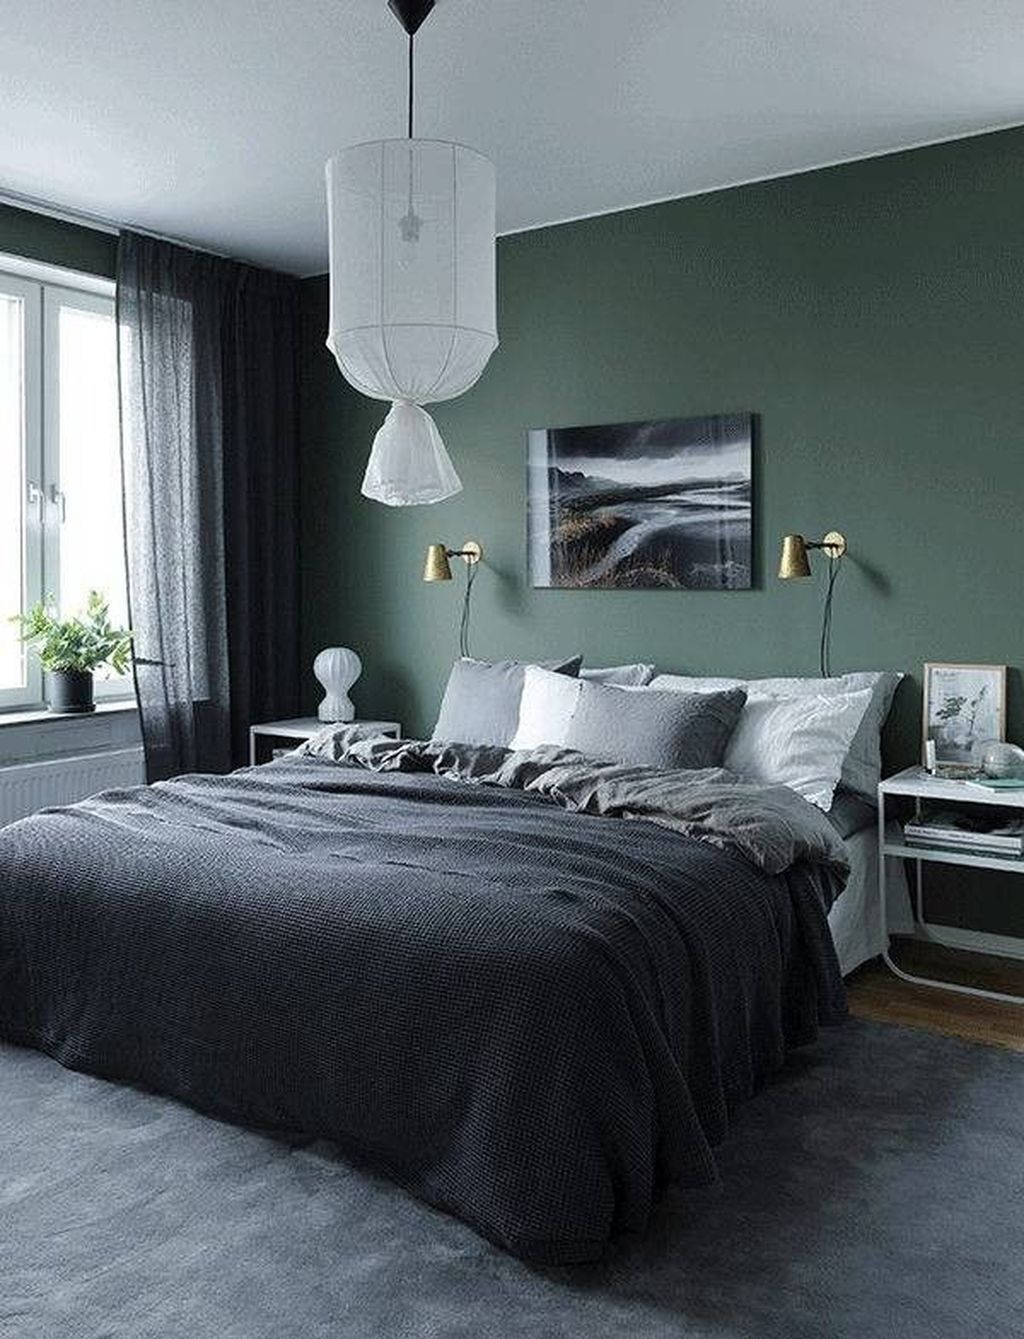 Cool 20 Modern Bedroom Decorating Ideas For Men Modern Mens Bedroom Grey With Dark Wood Walls And Green Bedroom Walls Home Decor Bedroom Dark Bedroom Walls